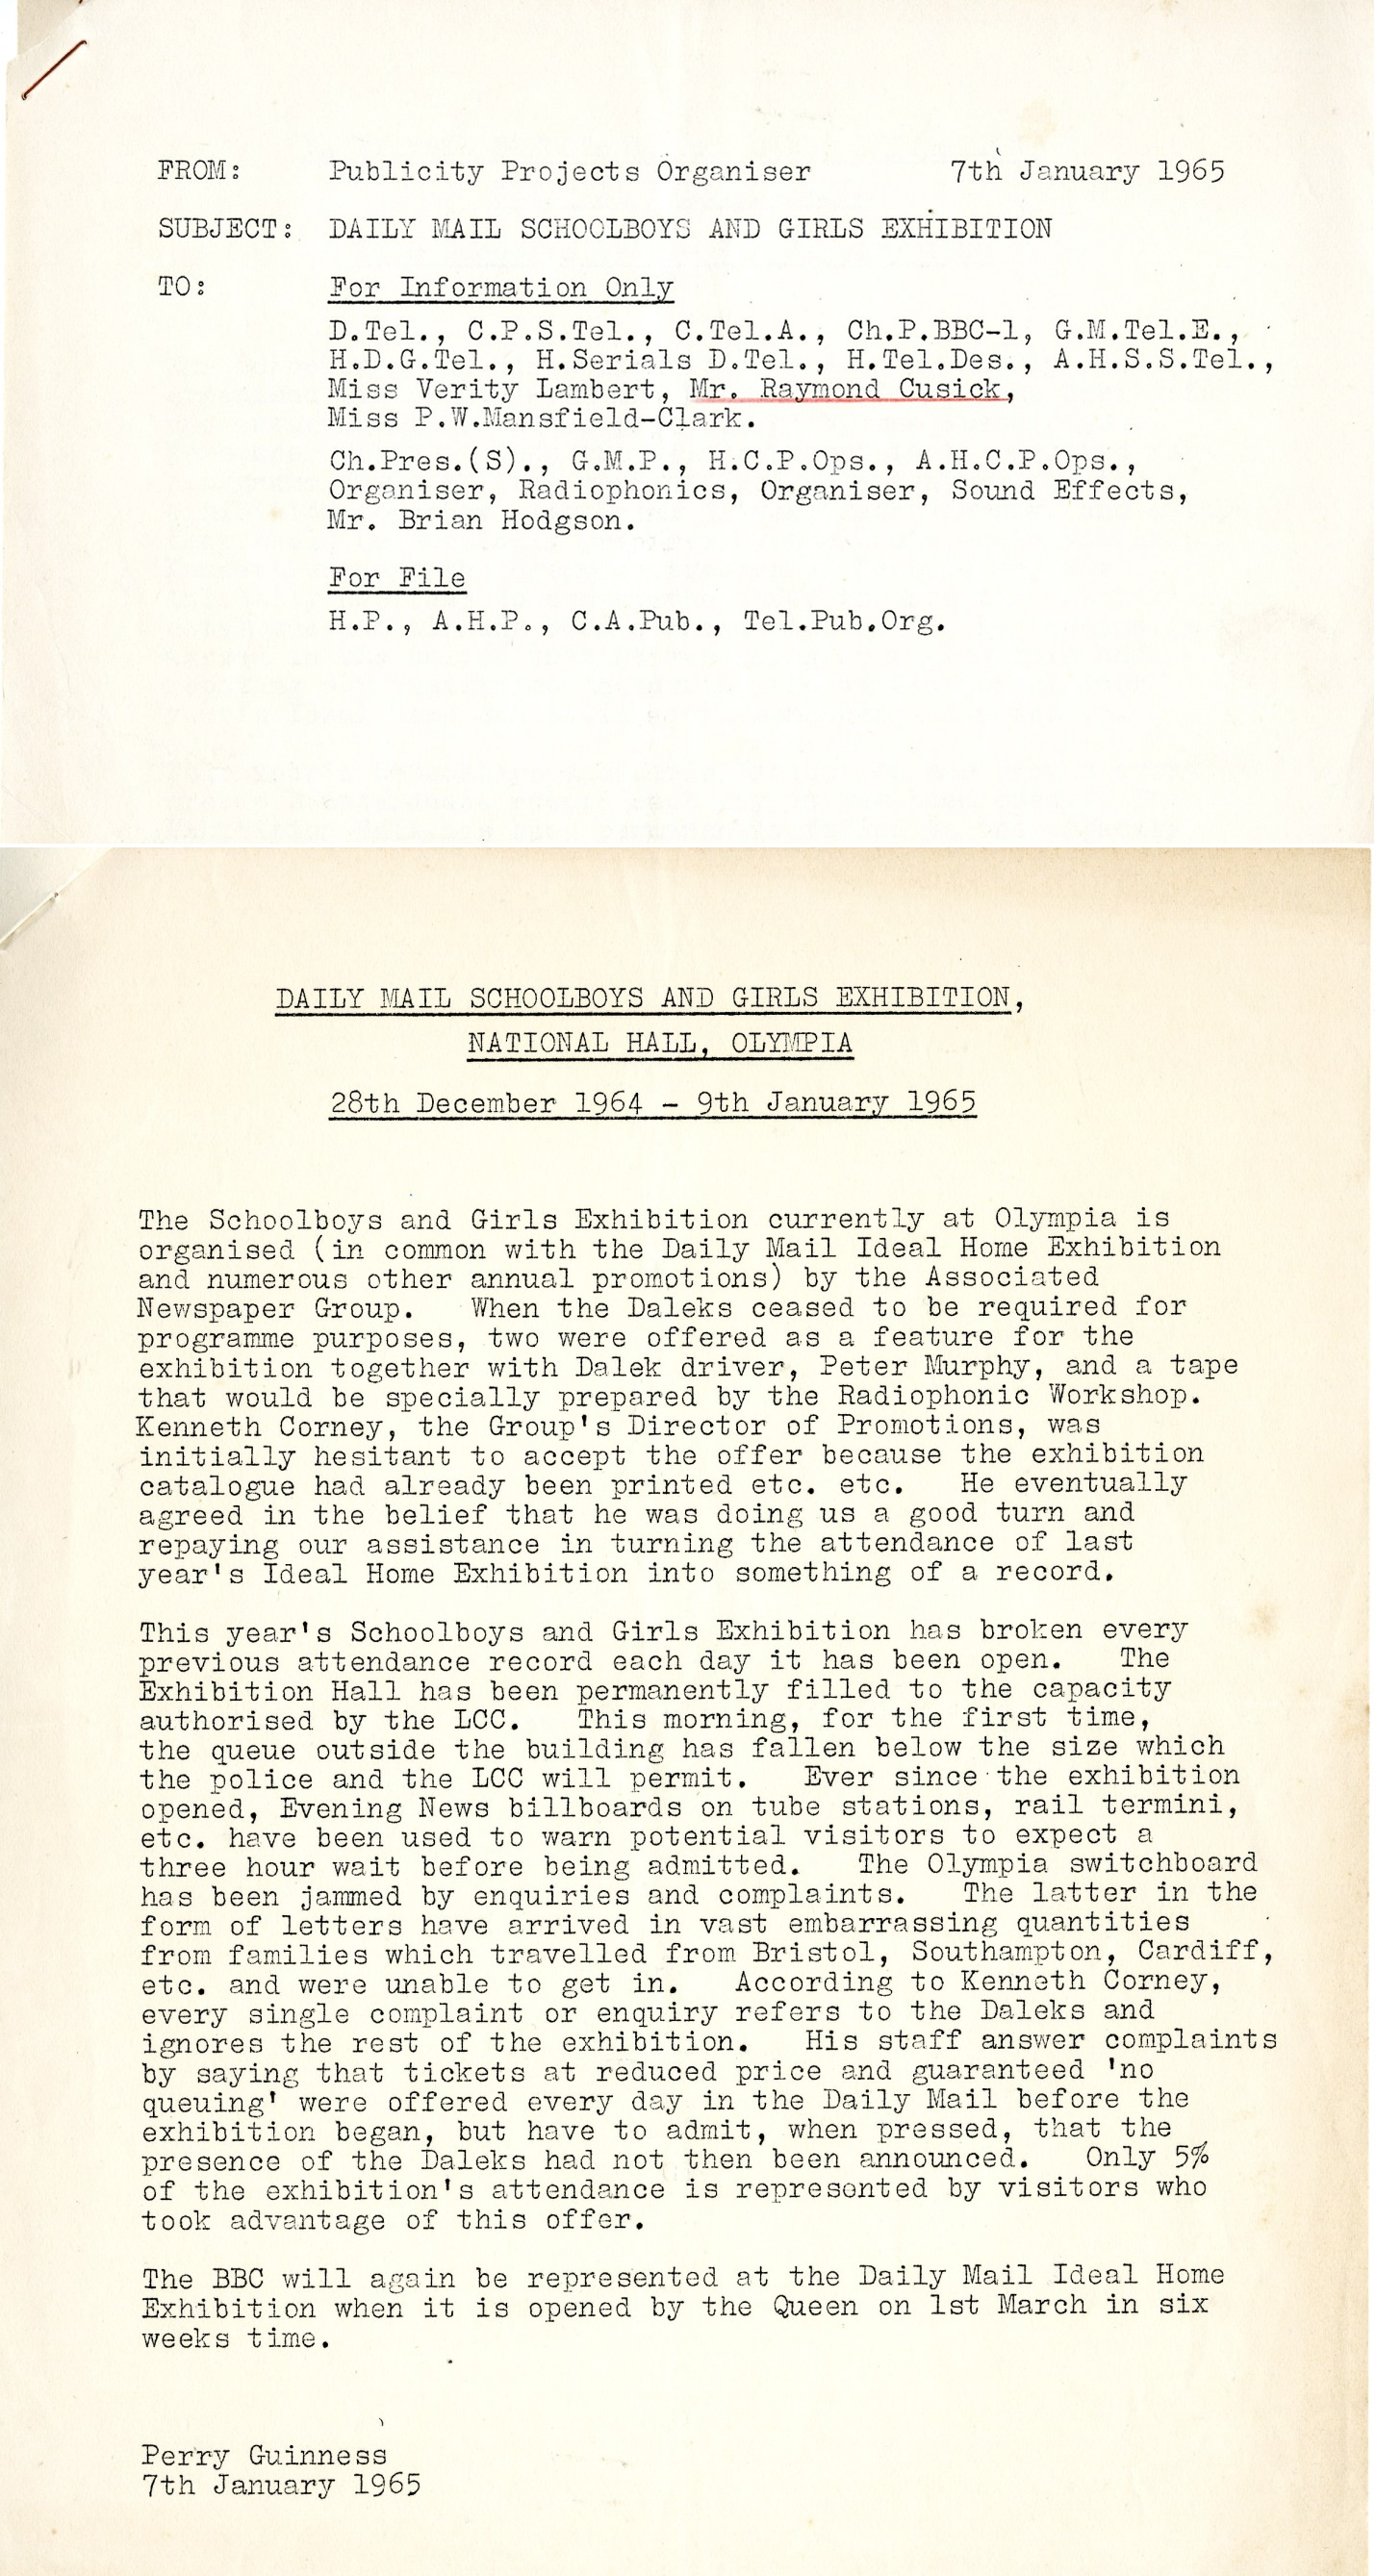 Memo from the BBC Publicity Projects Organizer dated January 7, 1965 regarding the use of Daleks at the Daily Mail Schoolboys and Girls Exhibition (from the Raymond Cusick archive)